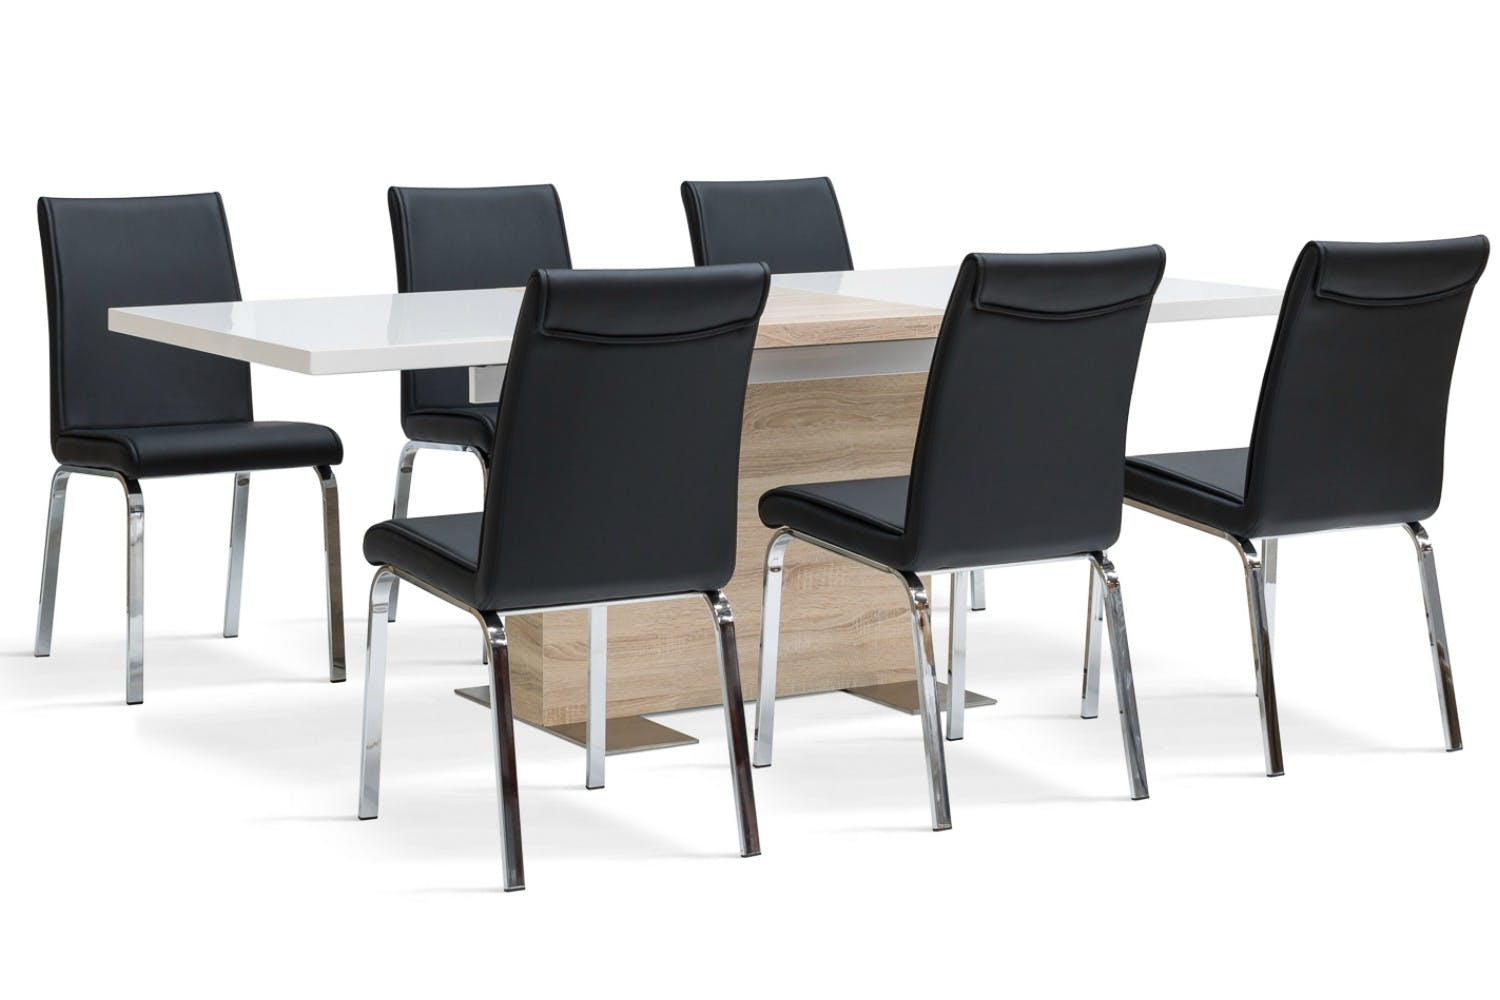 Lennox 7 piece dining set leonora dining chairs ireland for 7 piece dining set with bench